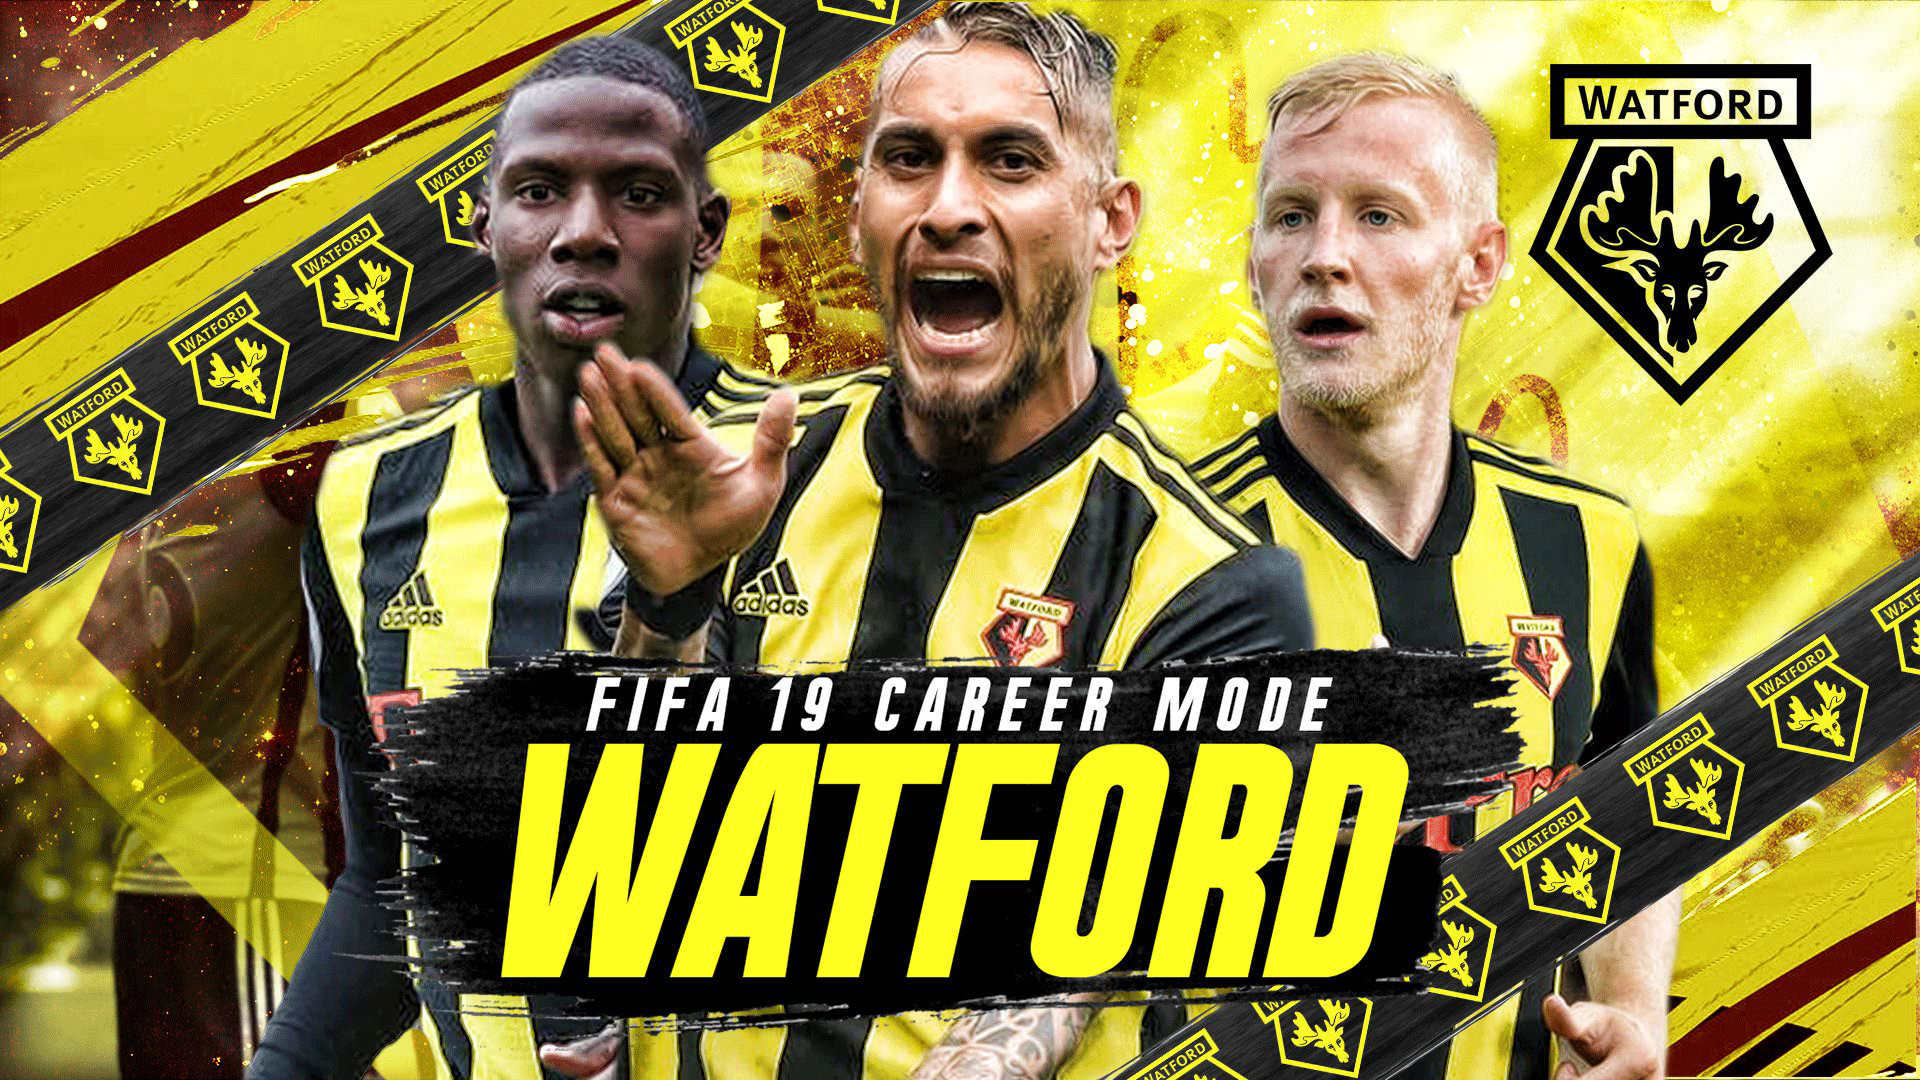 FIFA 19 Career Mode